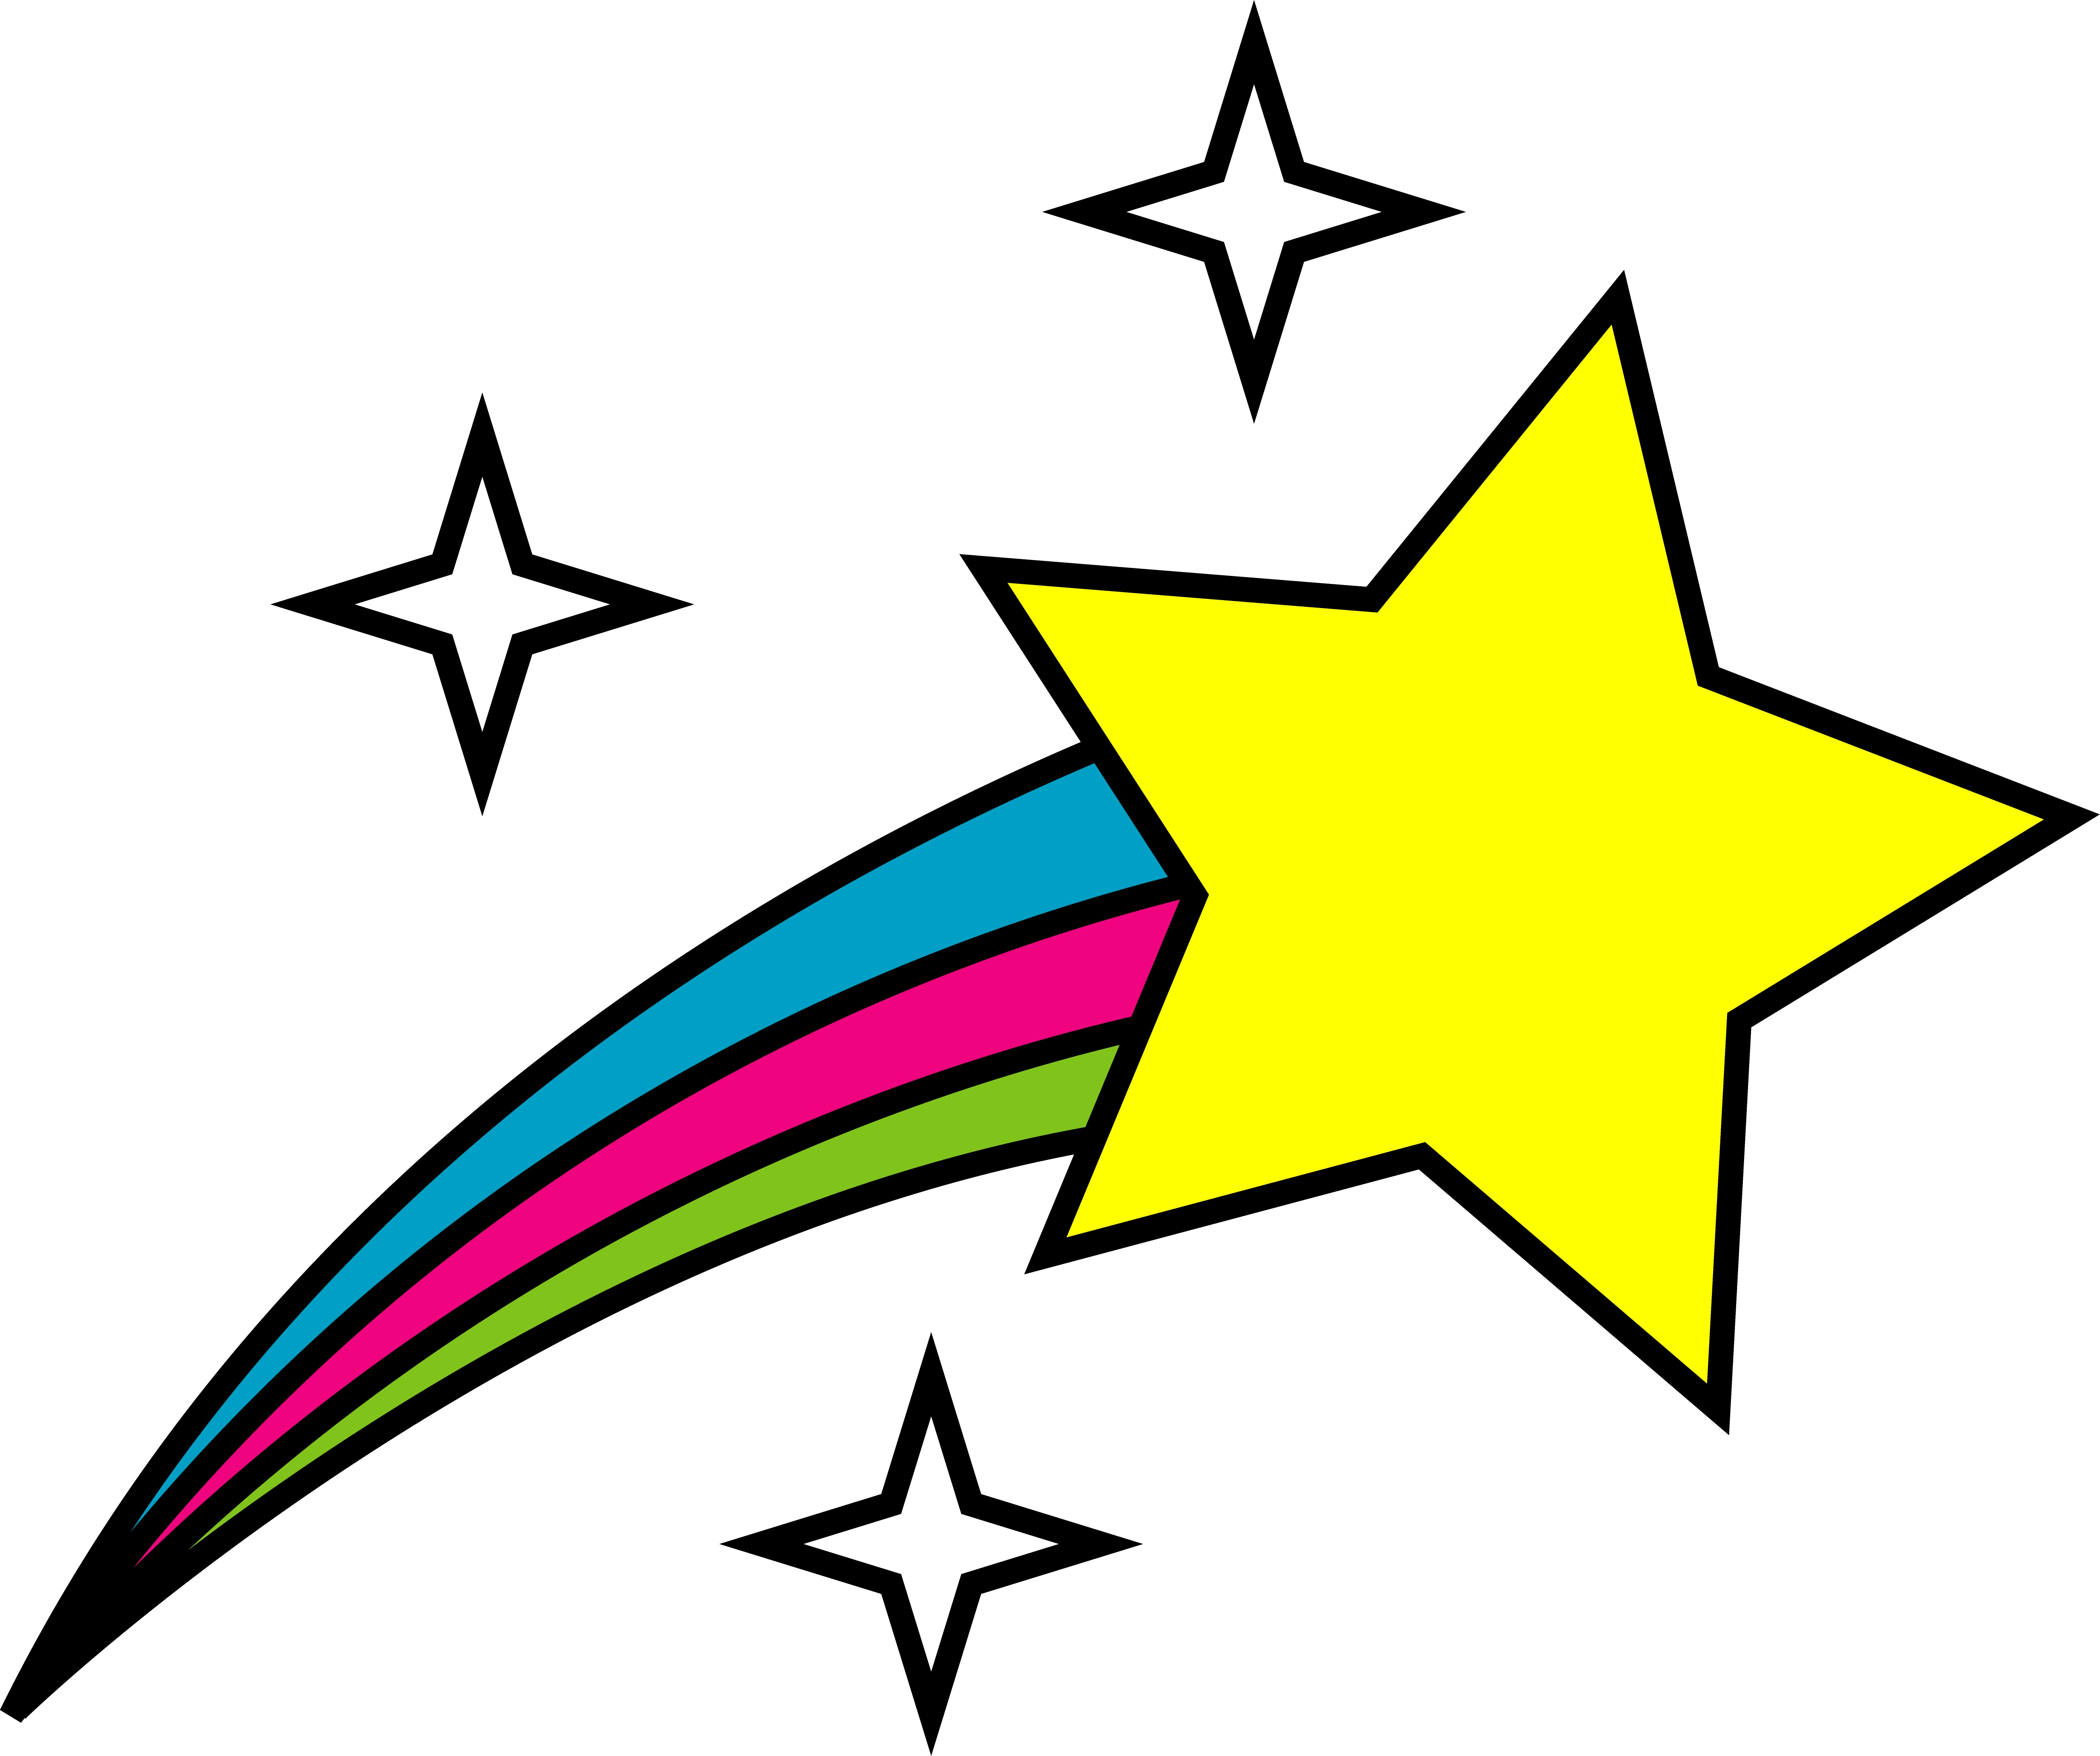 5 Star Clipart Free Download Best 5 Star Clipart On Clipartmag